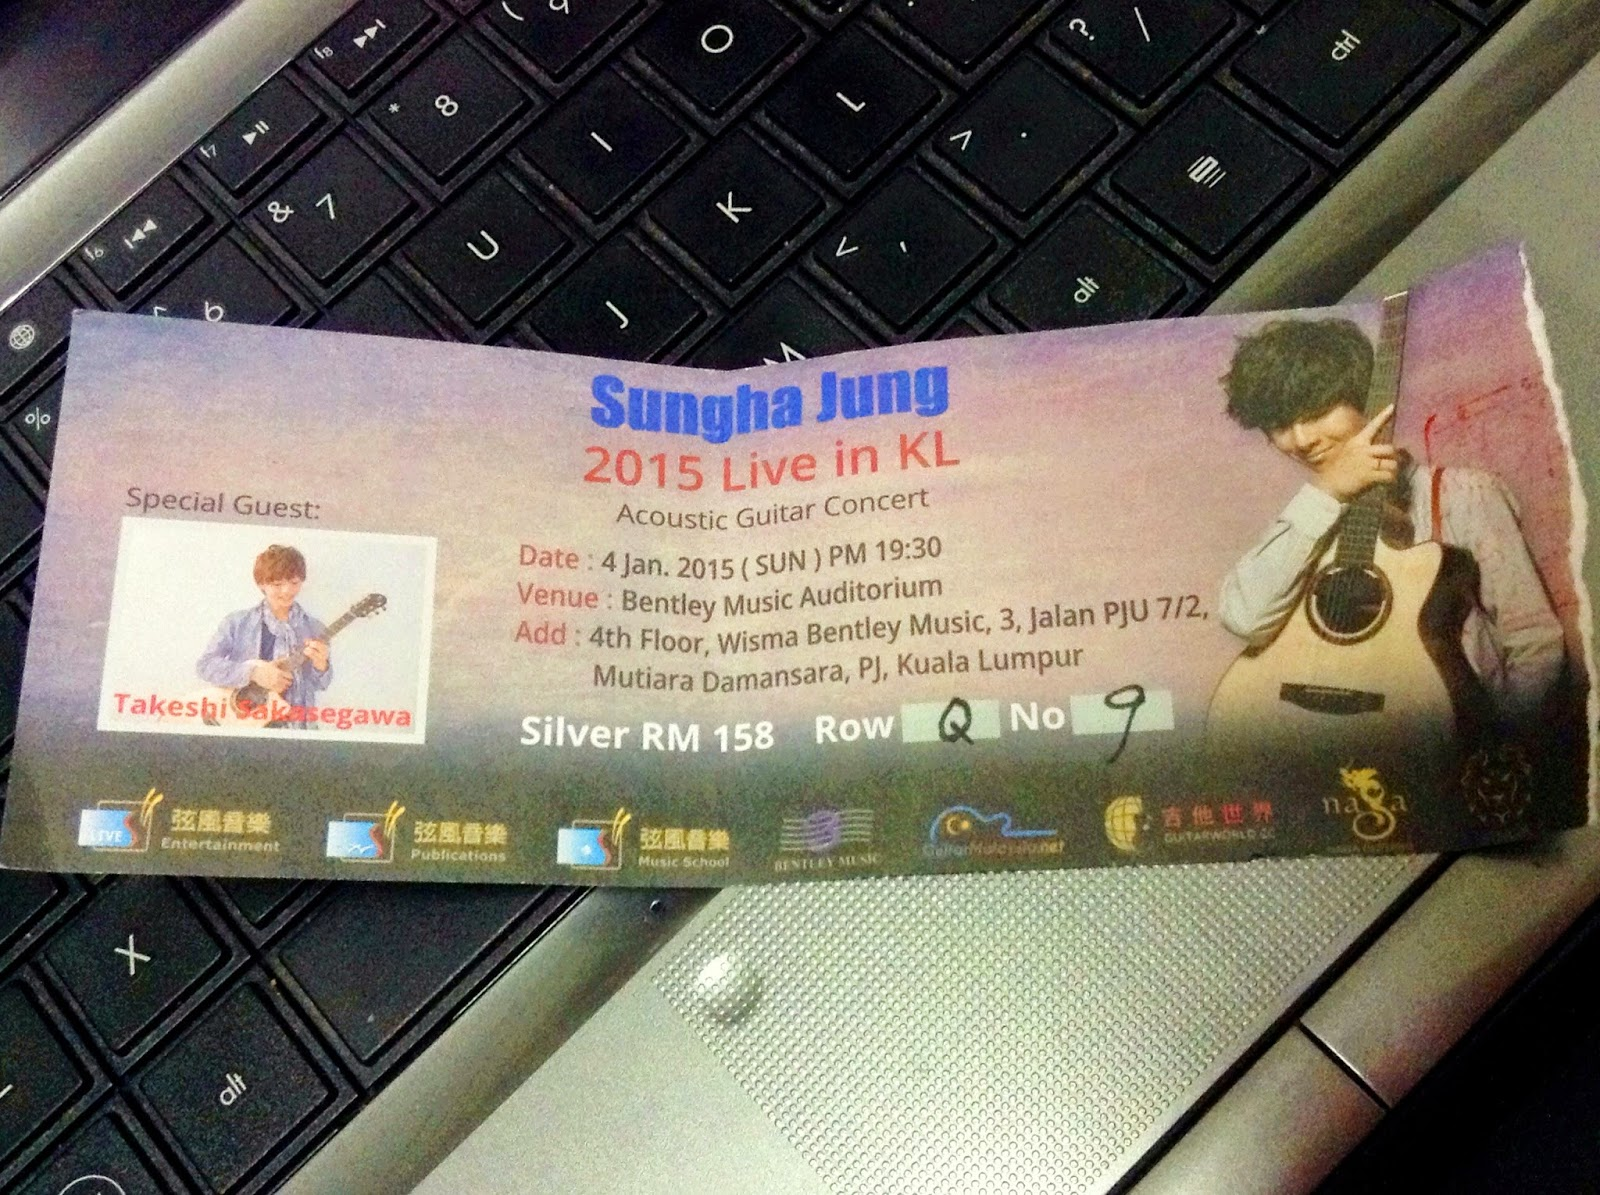 HELLO, WORLD: Sungha Jung live in KL 2015